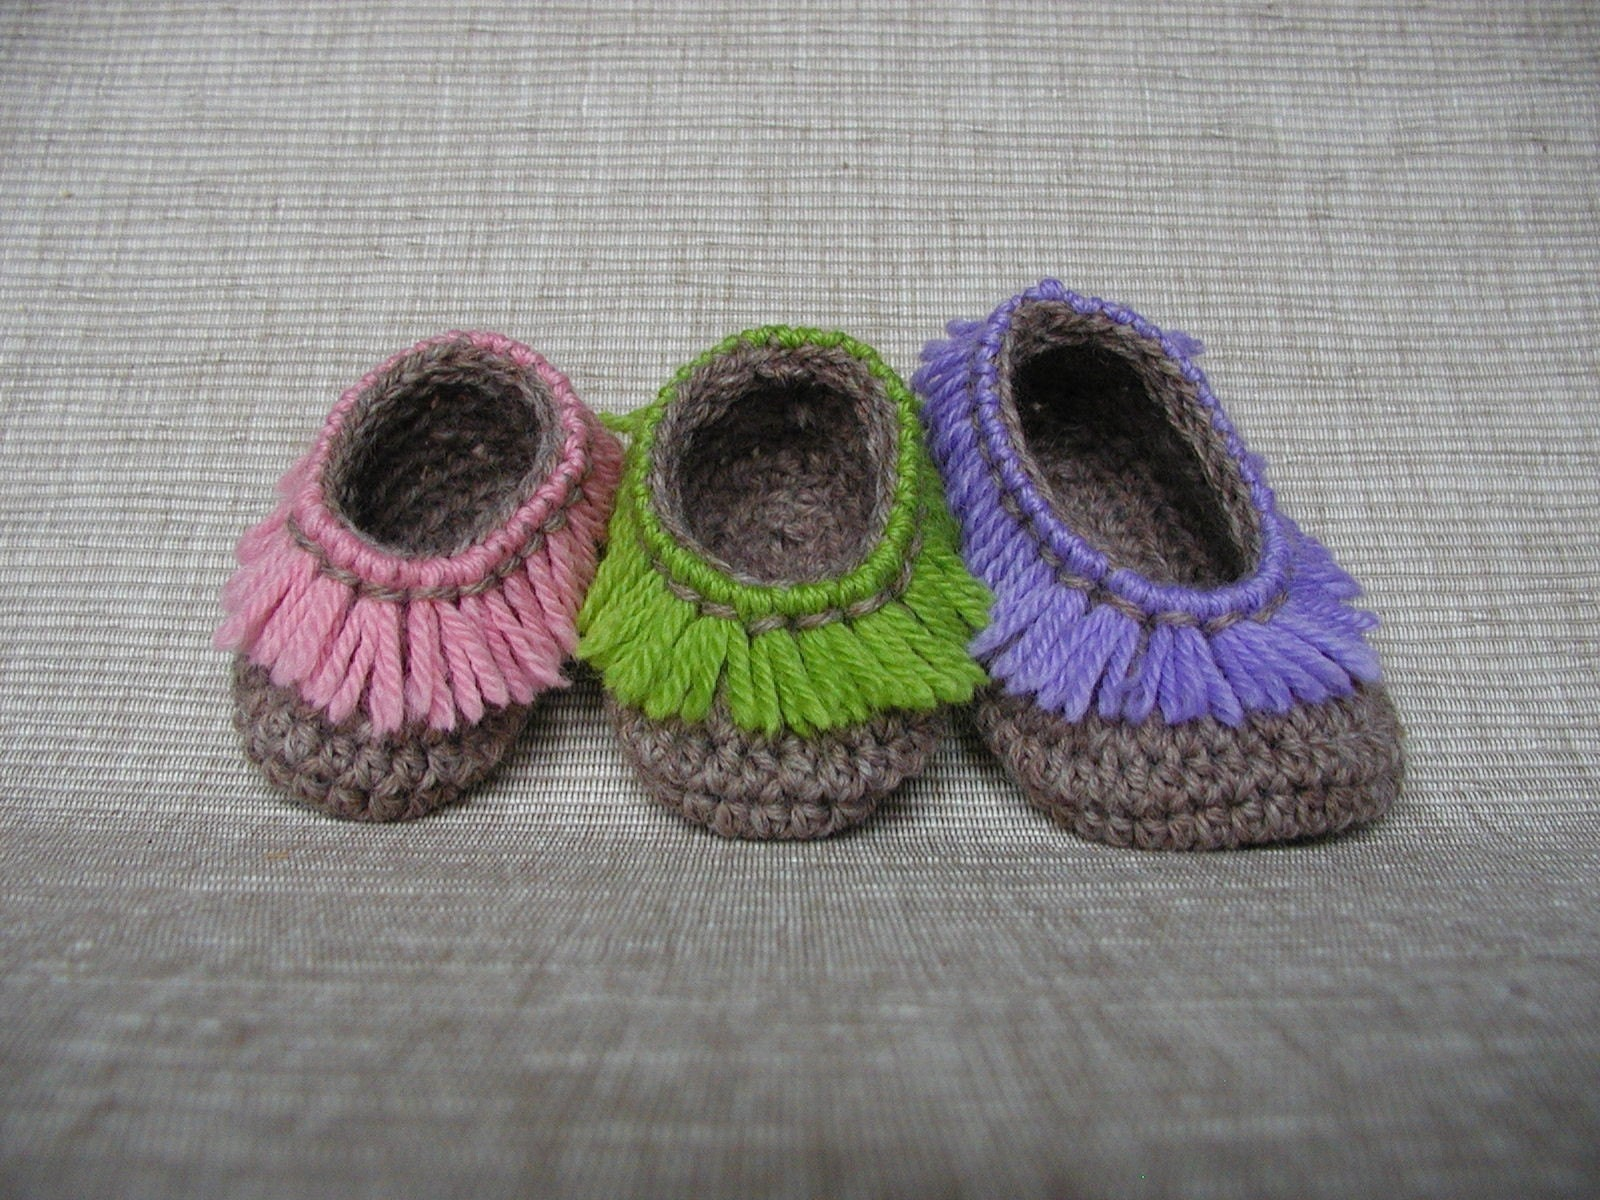 Crochet Patterns Lapghans : EASY BABY CROCHET PATTERNS - Crochet - Learn How to Crochet